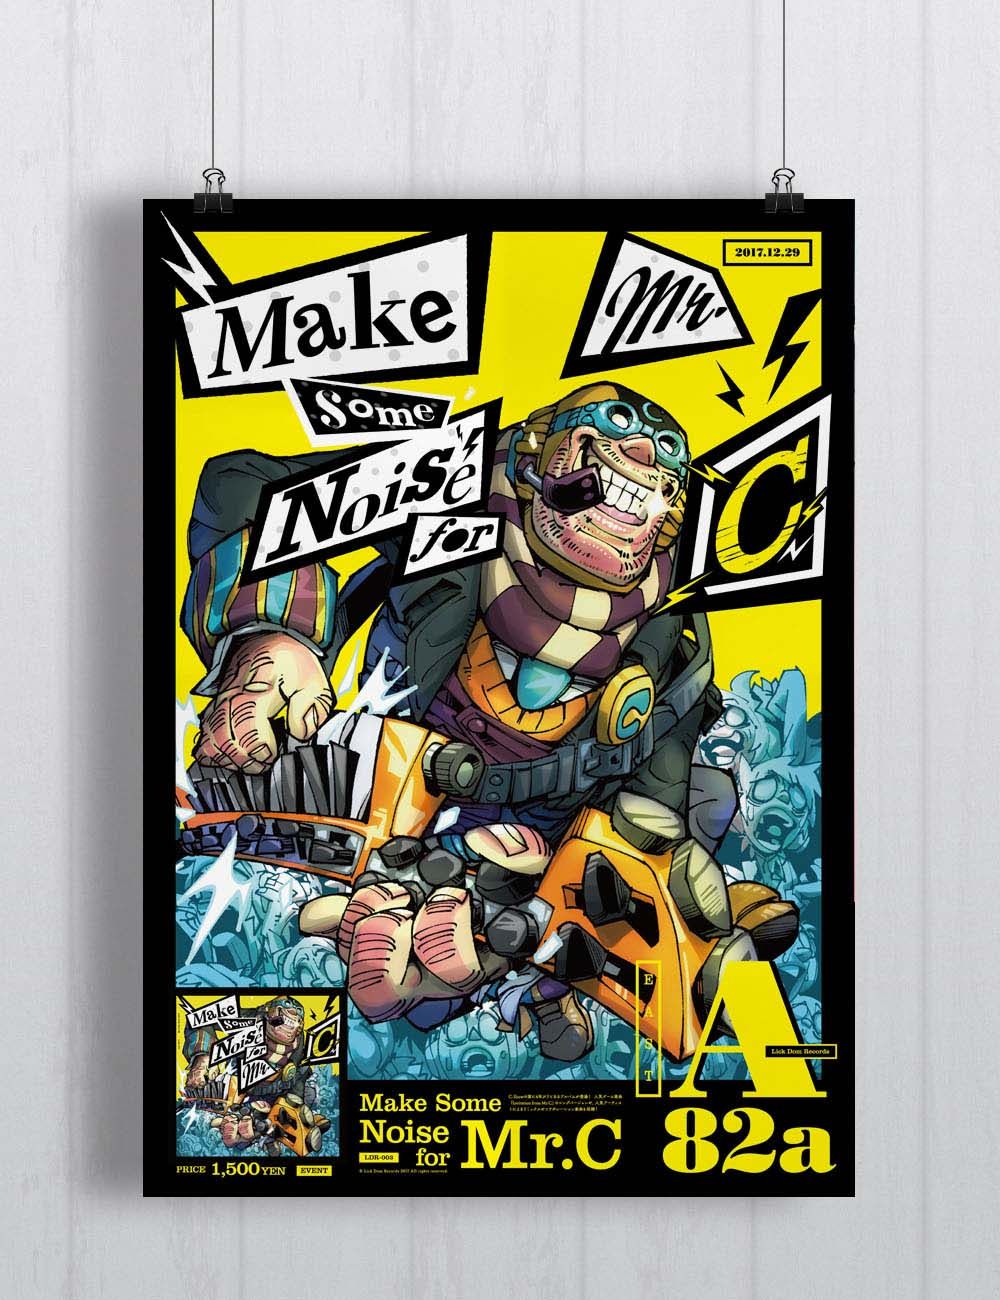 Make Some Noise for Mr.C ポスター